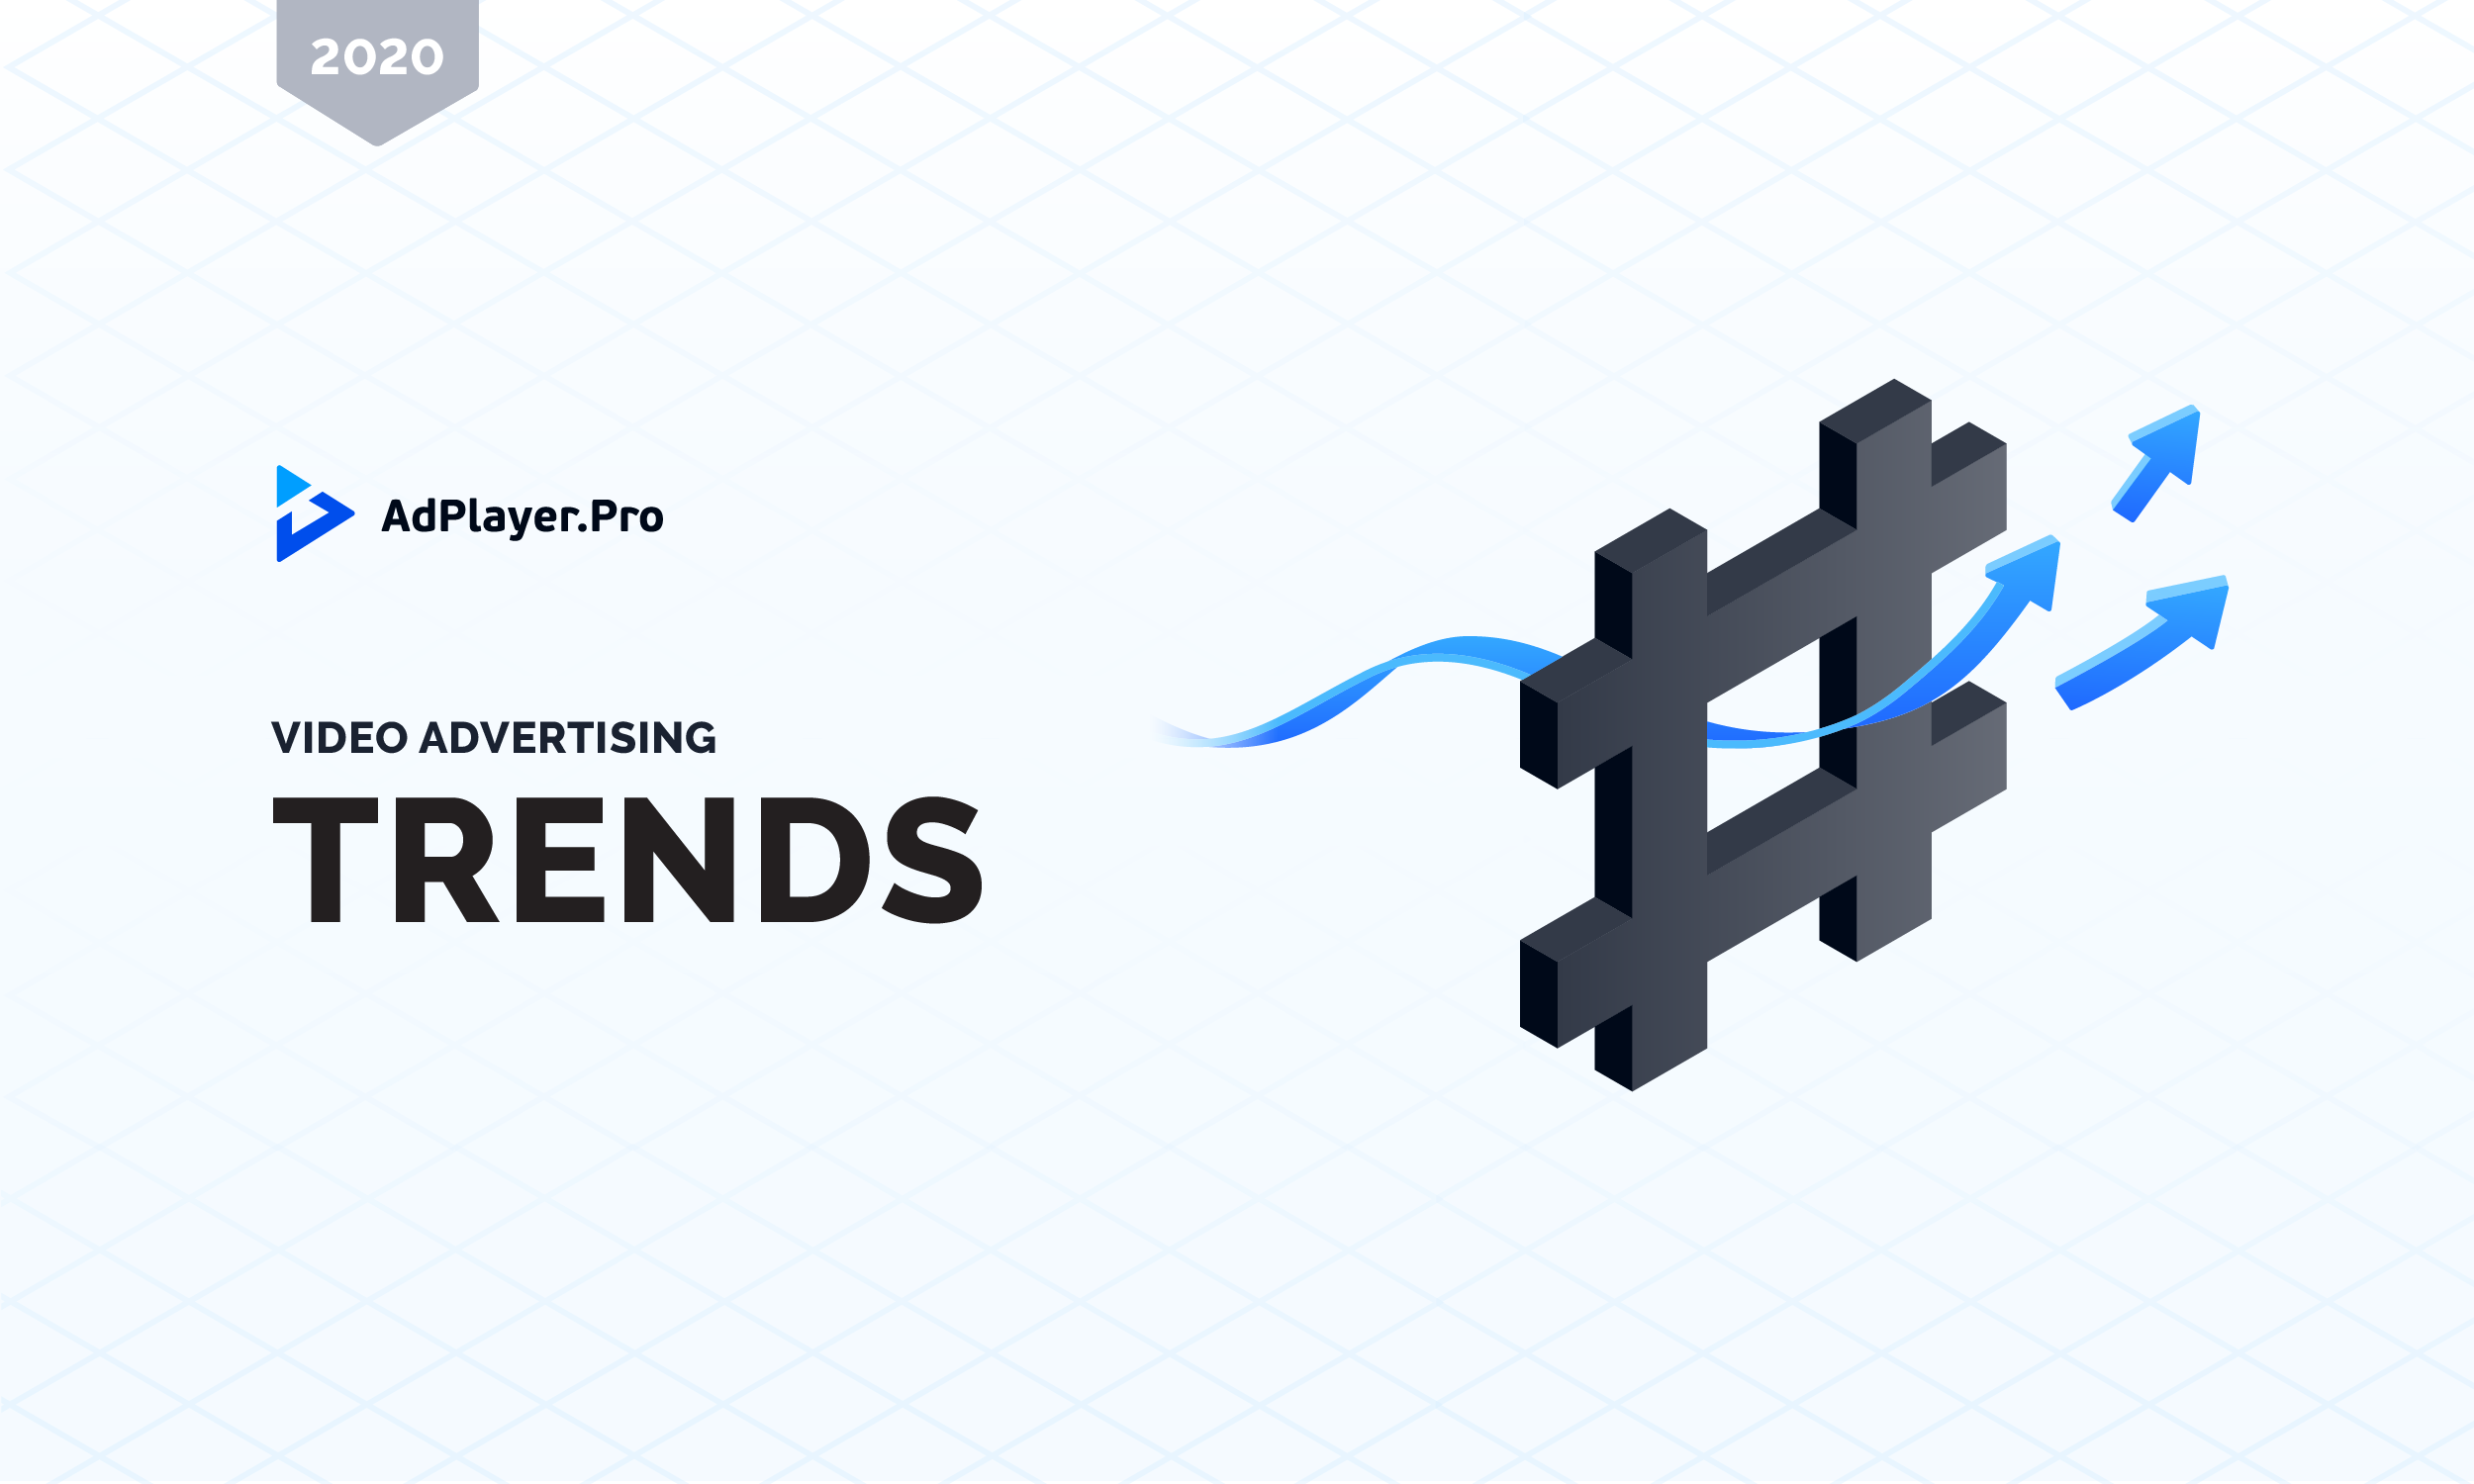 [INFOGRAPHIC] 2020 Video Advertising Trends